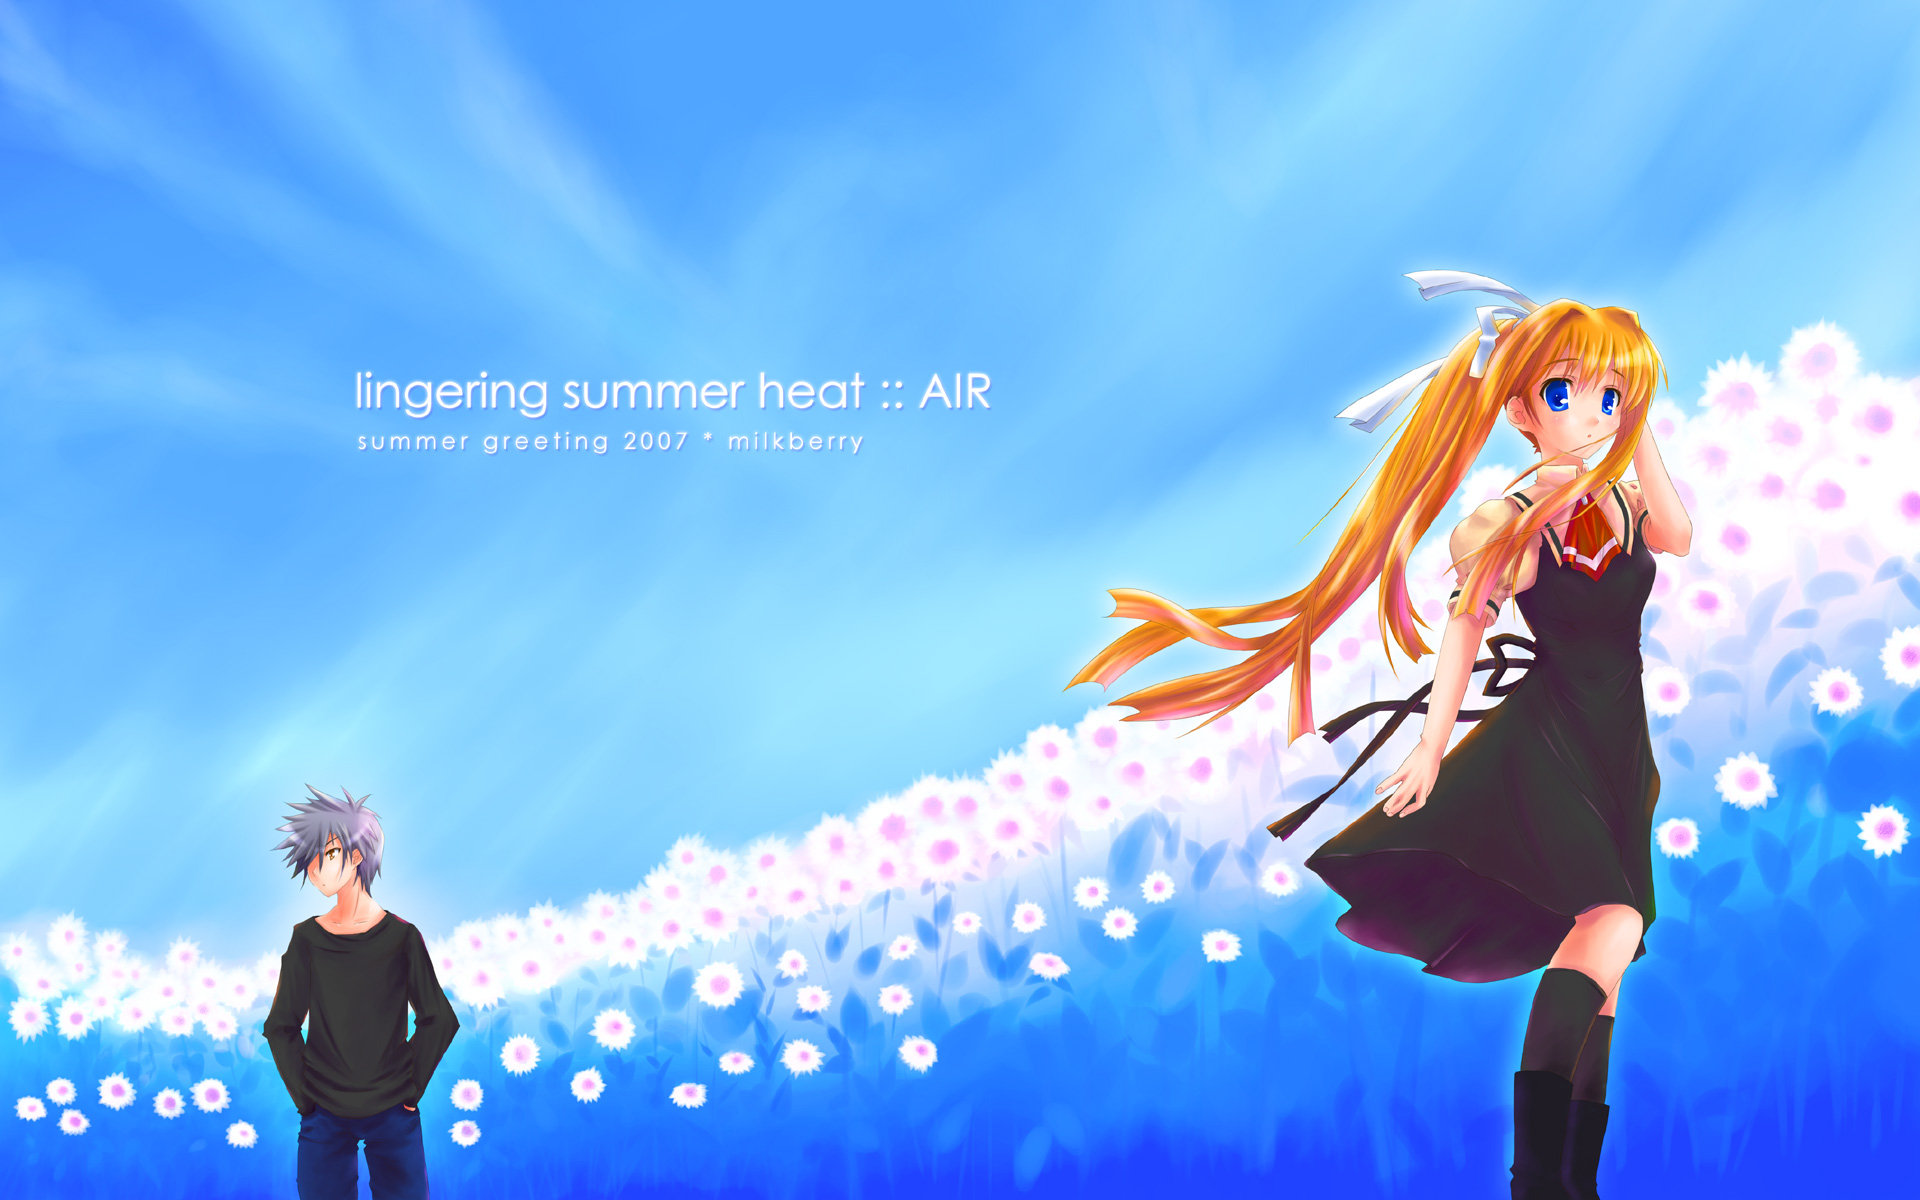 Download hd 1920x1200 Air anime PC background ID:273458 for free